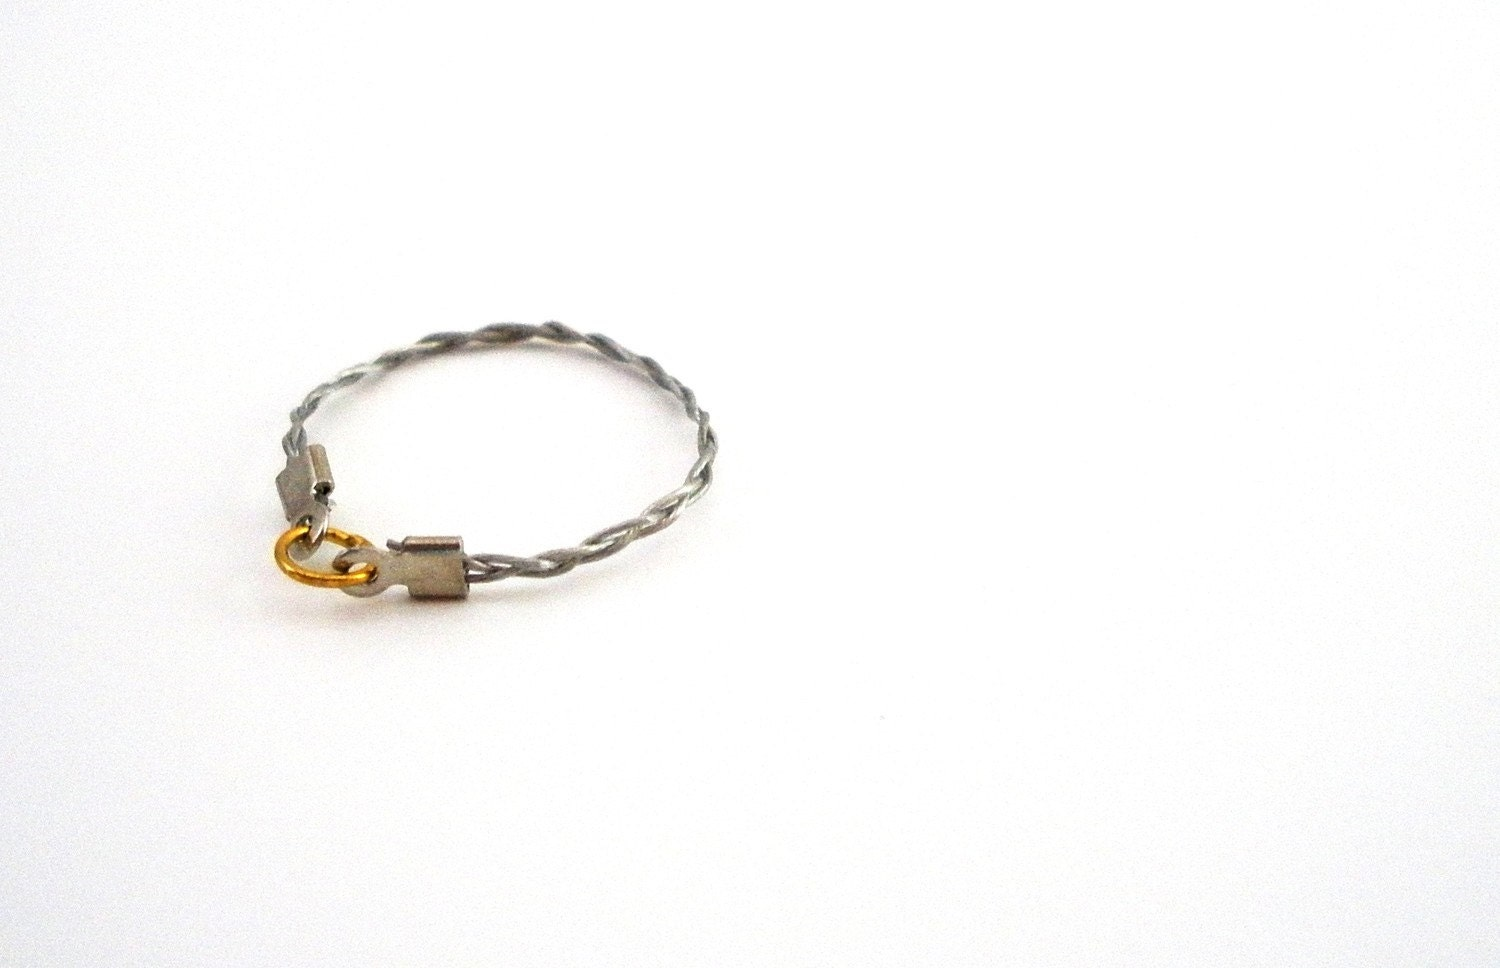 Braided Wire Ring in Silver and Gold - industrial, classic, chic